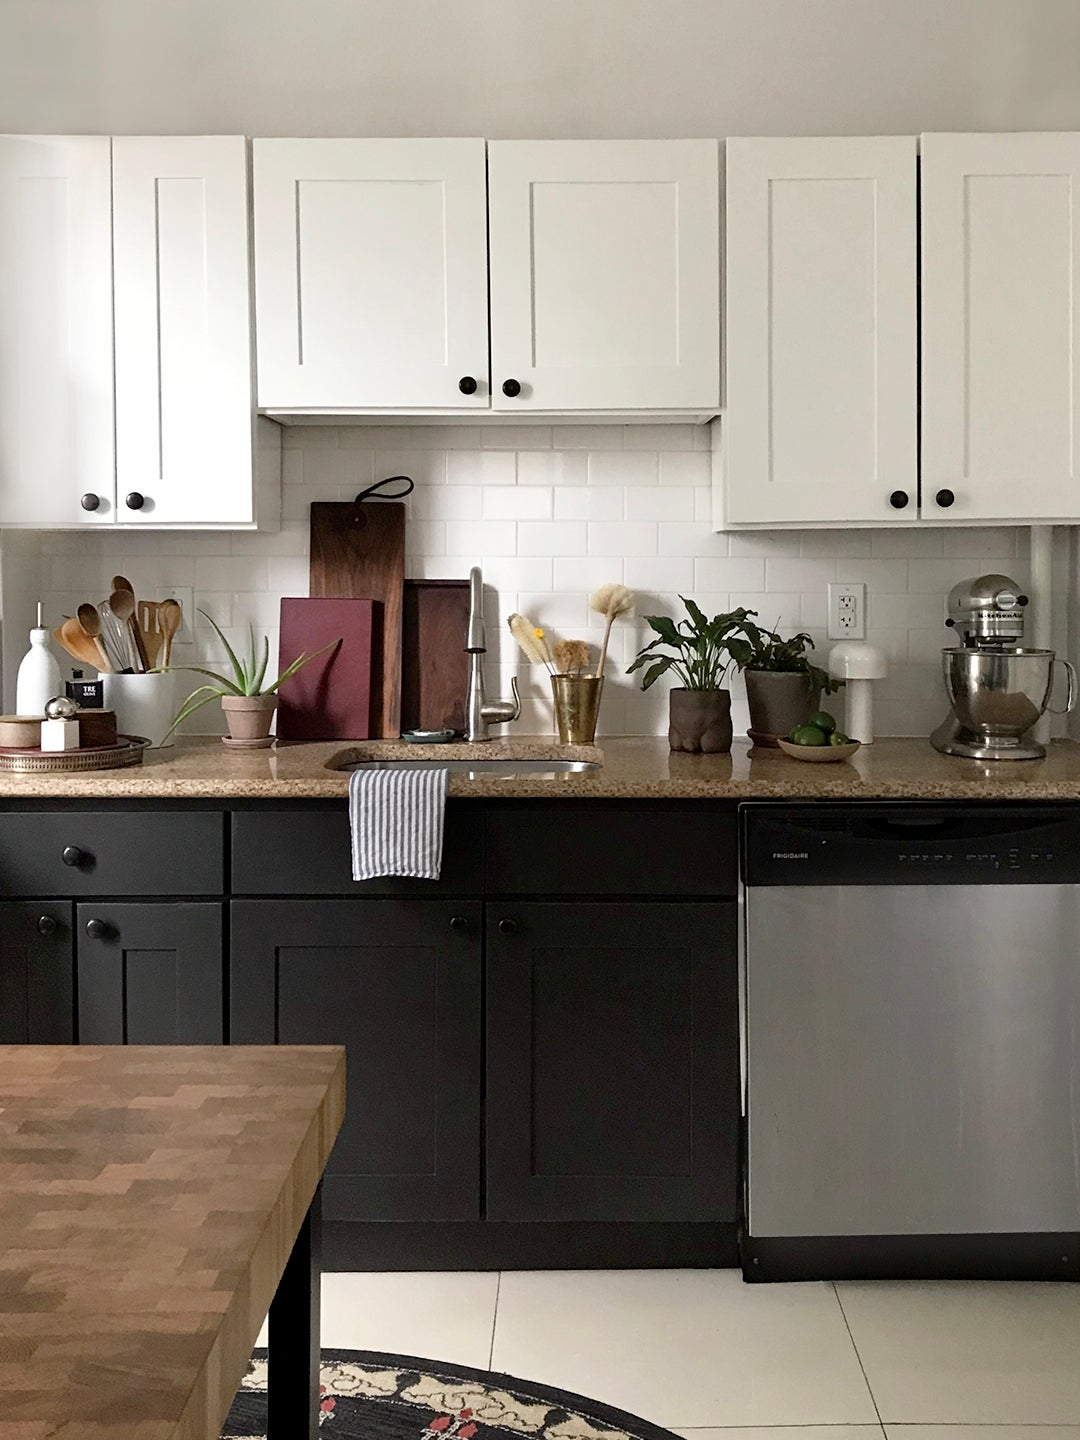 Cabinets painted black and white